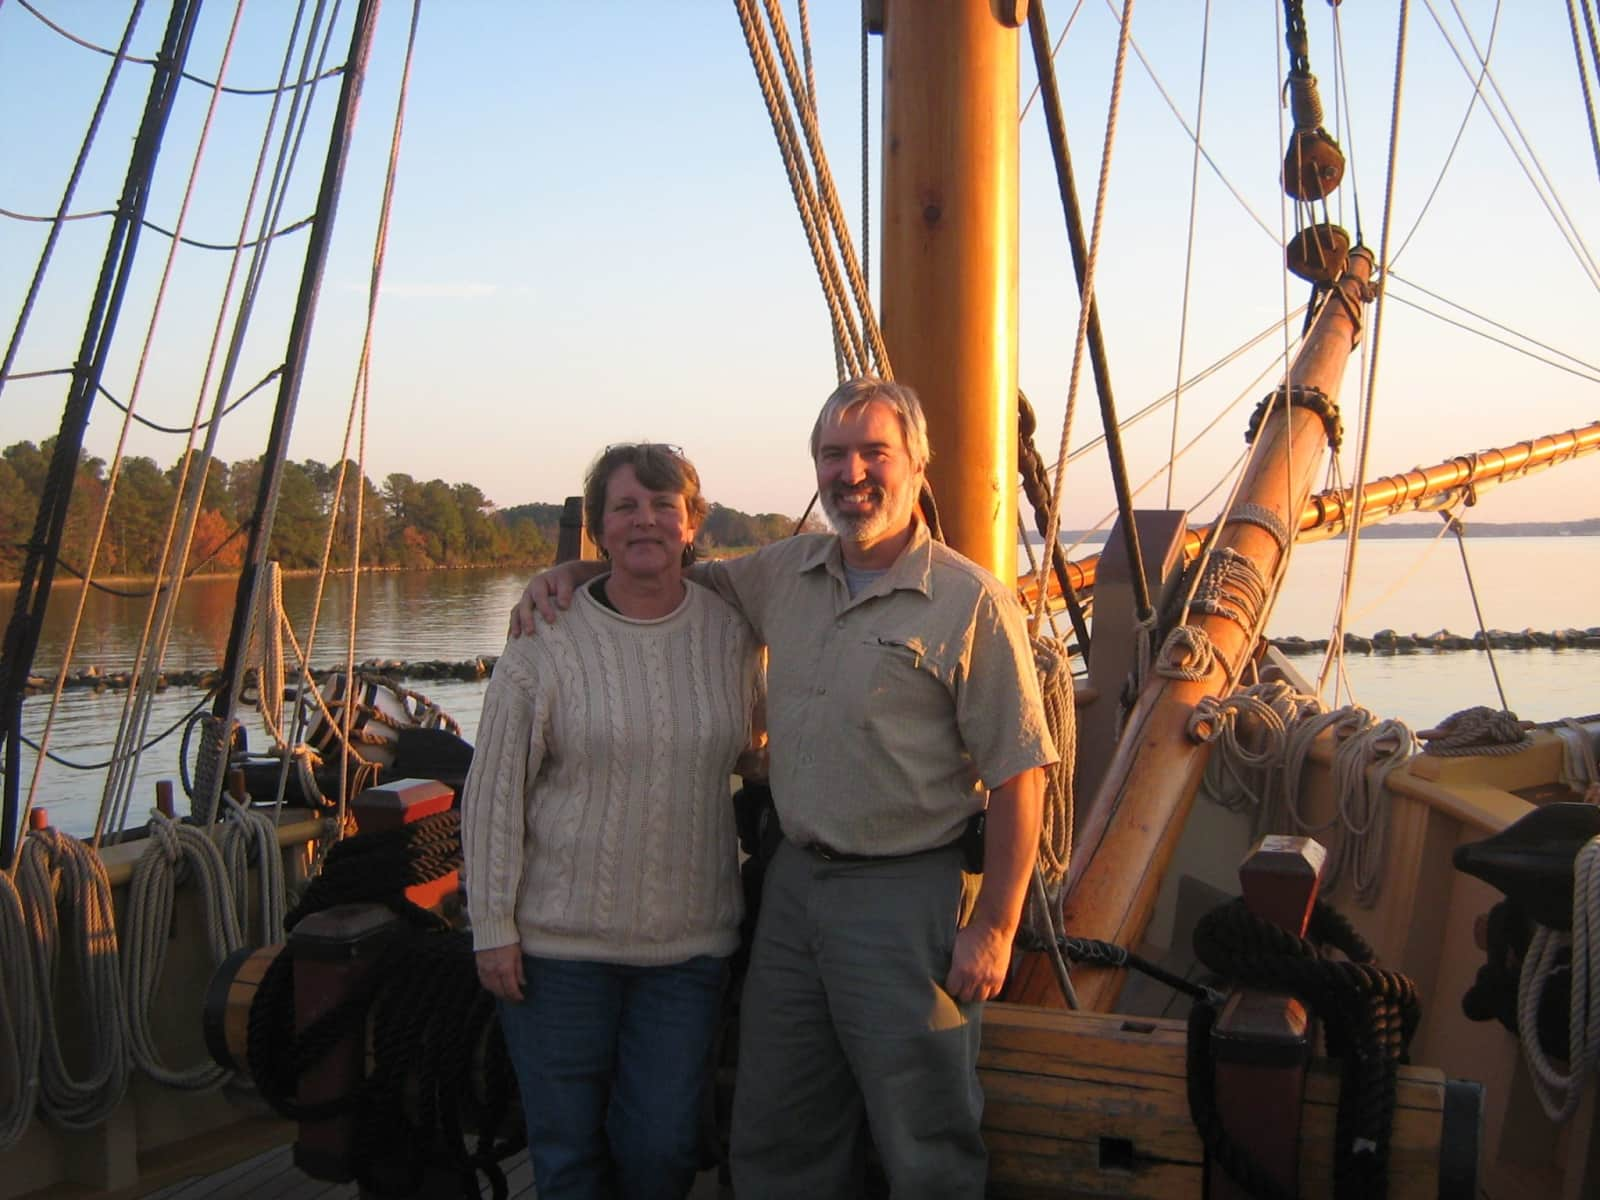 Liz & Chris from London, Ontario, Canada